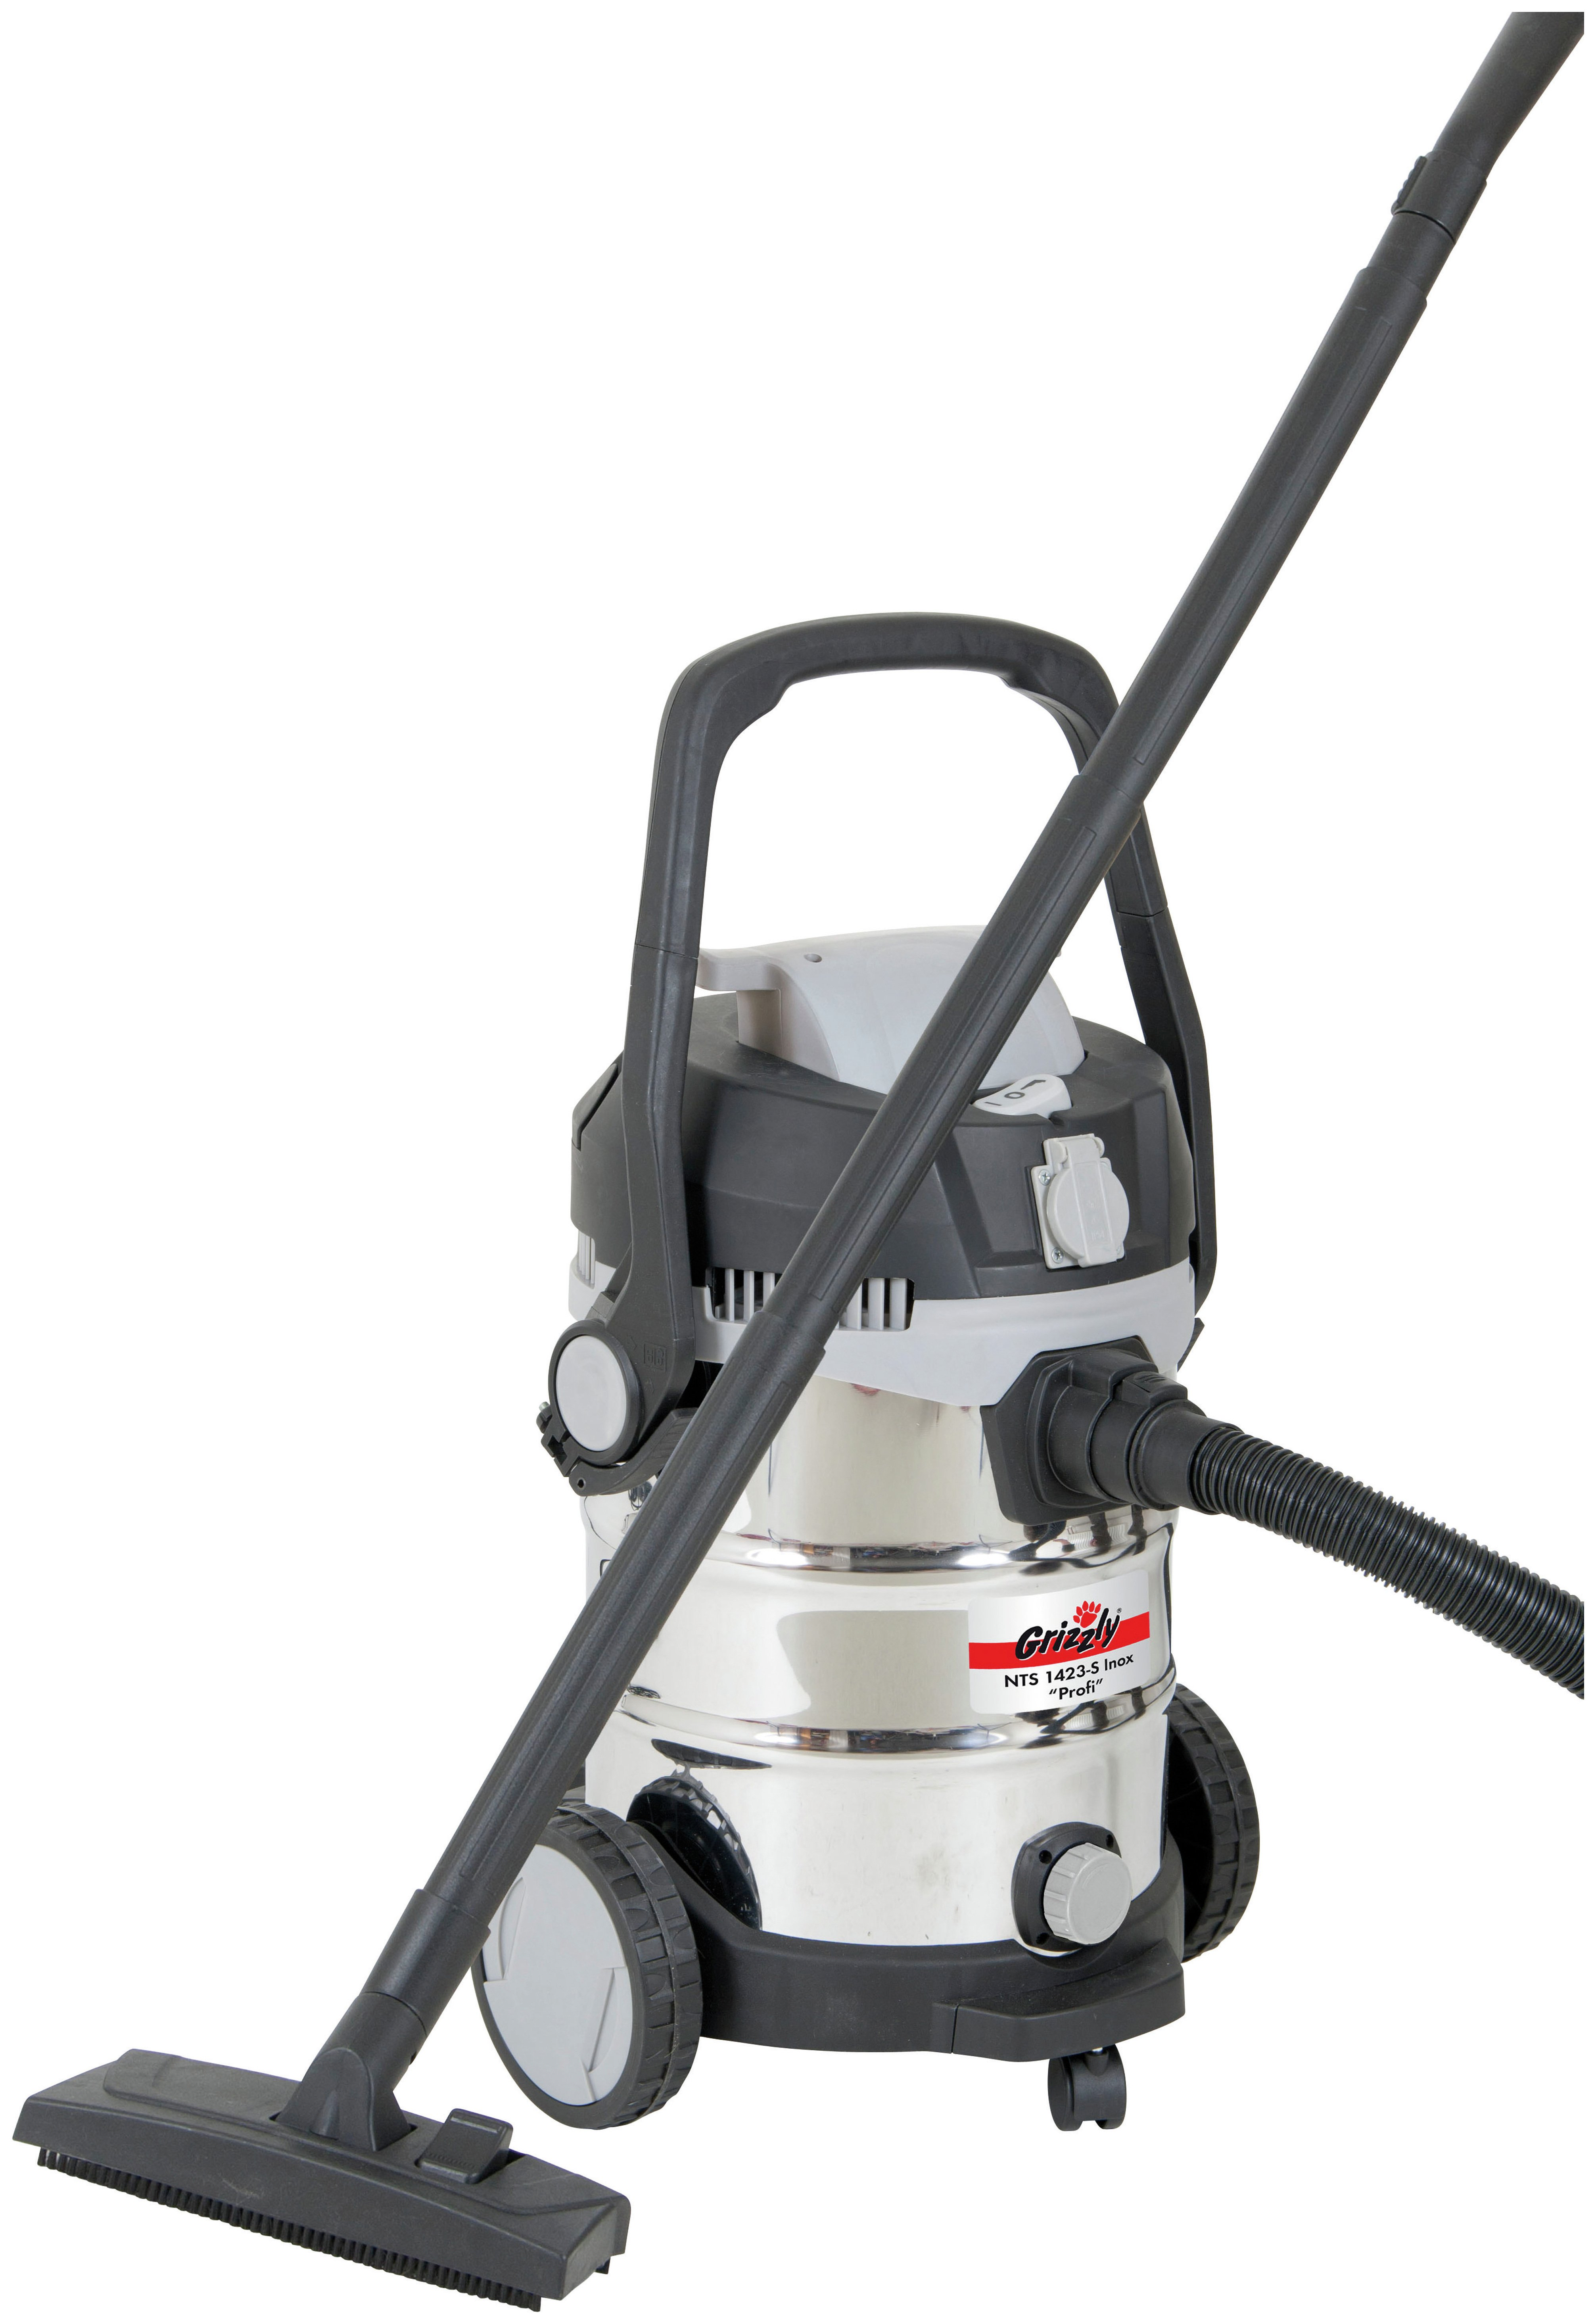 Image of Grizzly Tools Semi Pro Wet and Dry Vacuum Cleaner - 1400W